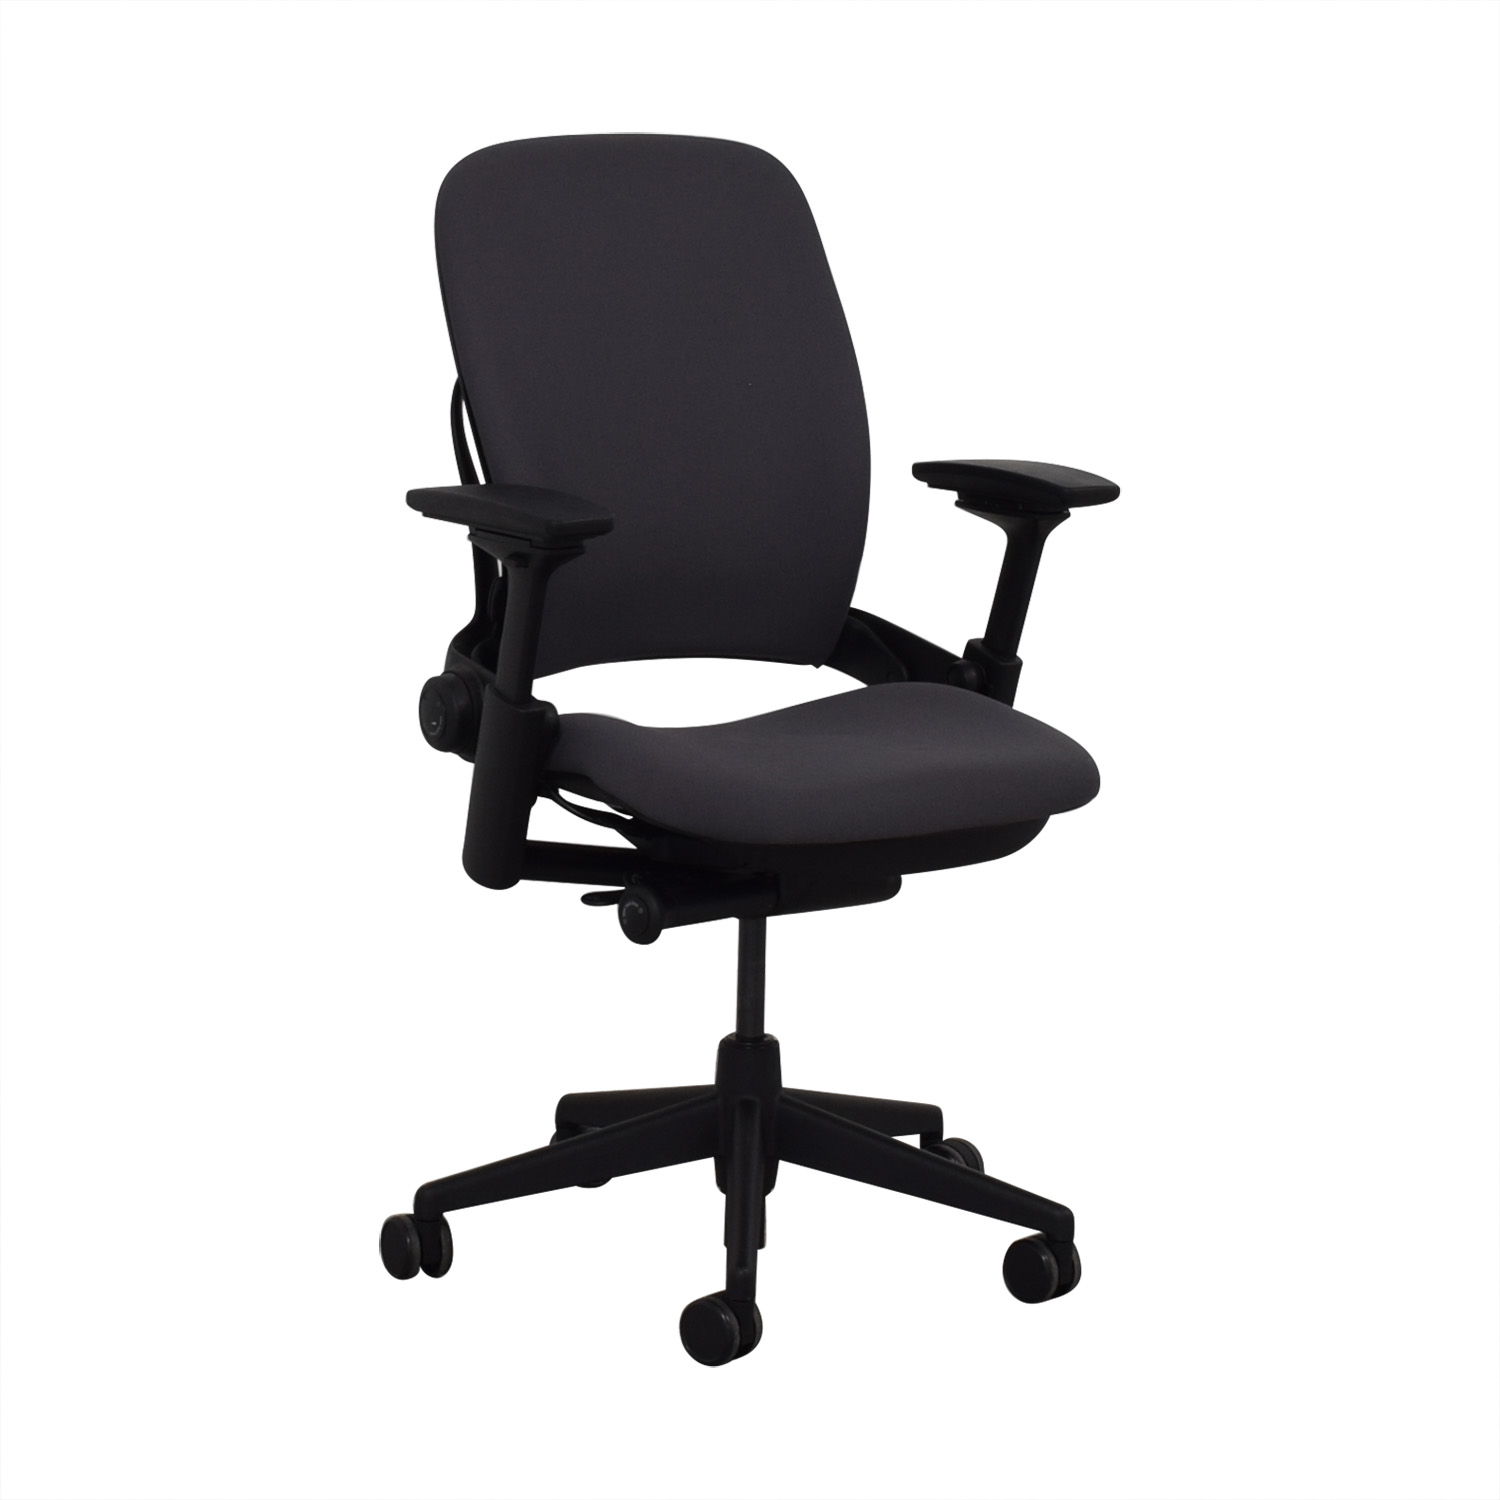 Steelcase Steelcase Leap V2 Office Chair